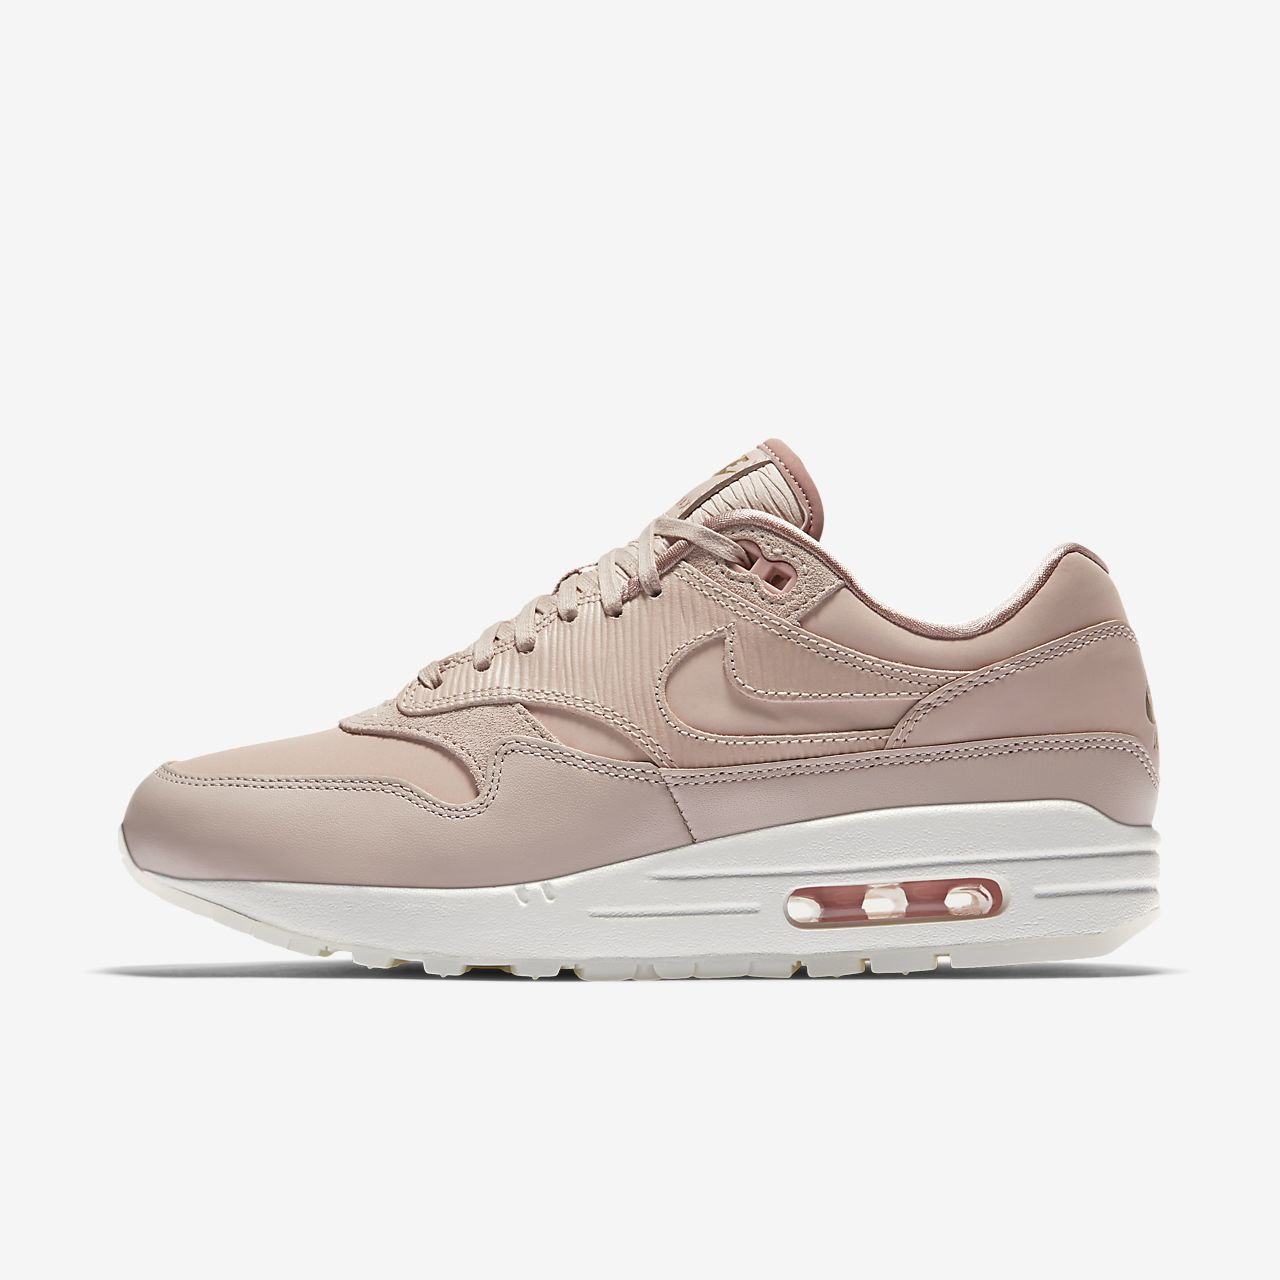 nike air max 1 premium womens white converse